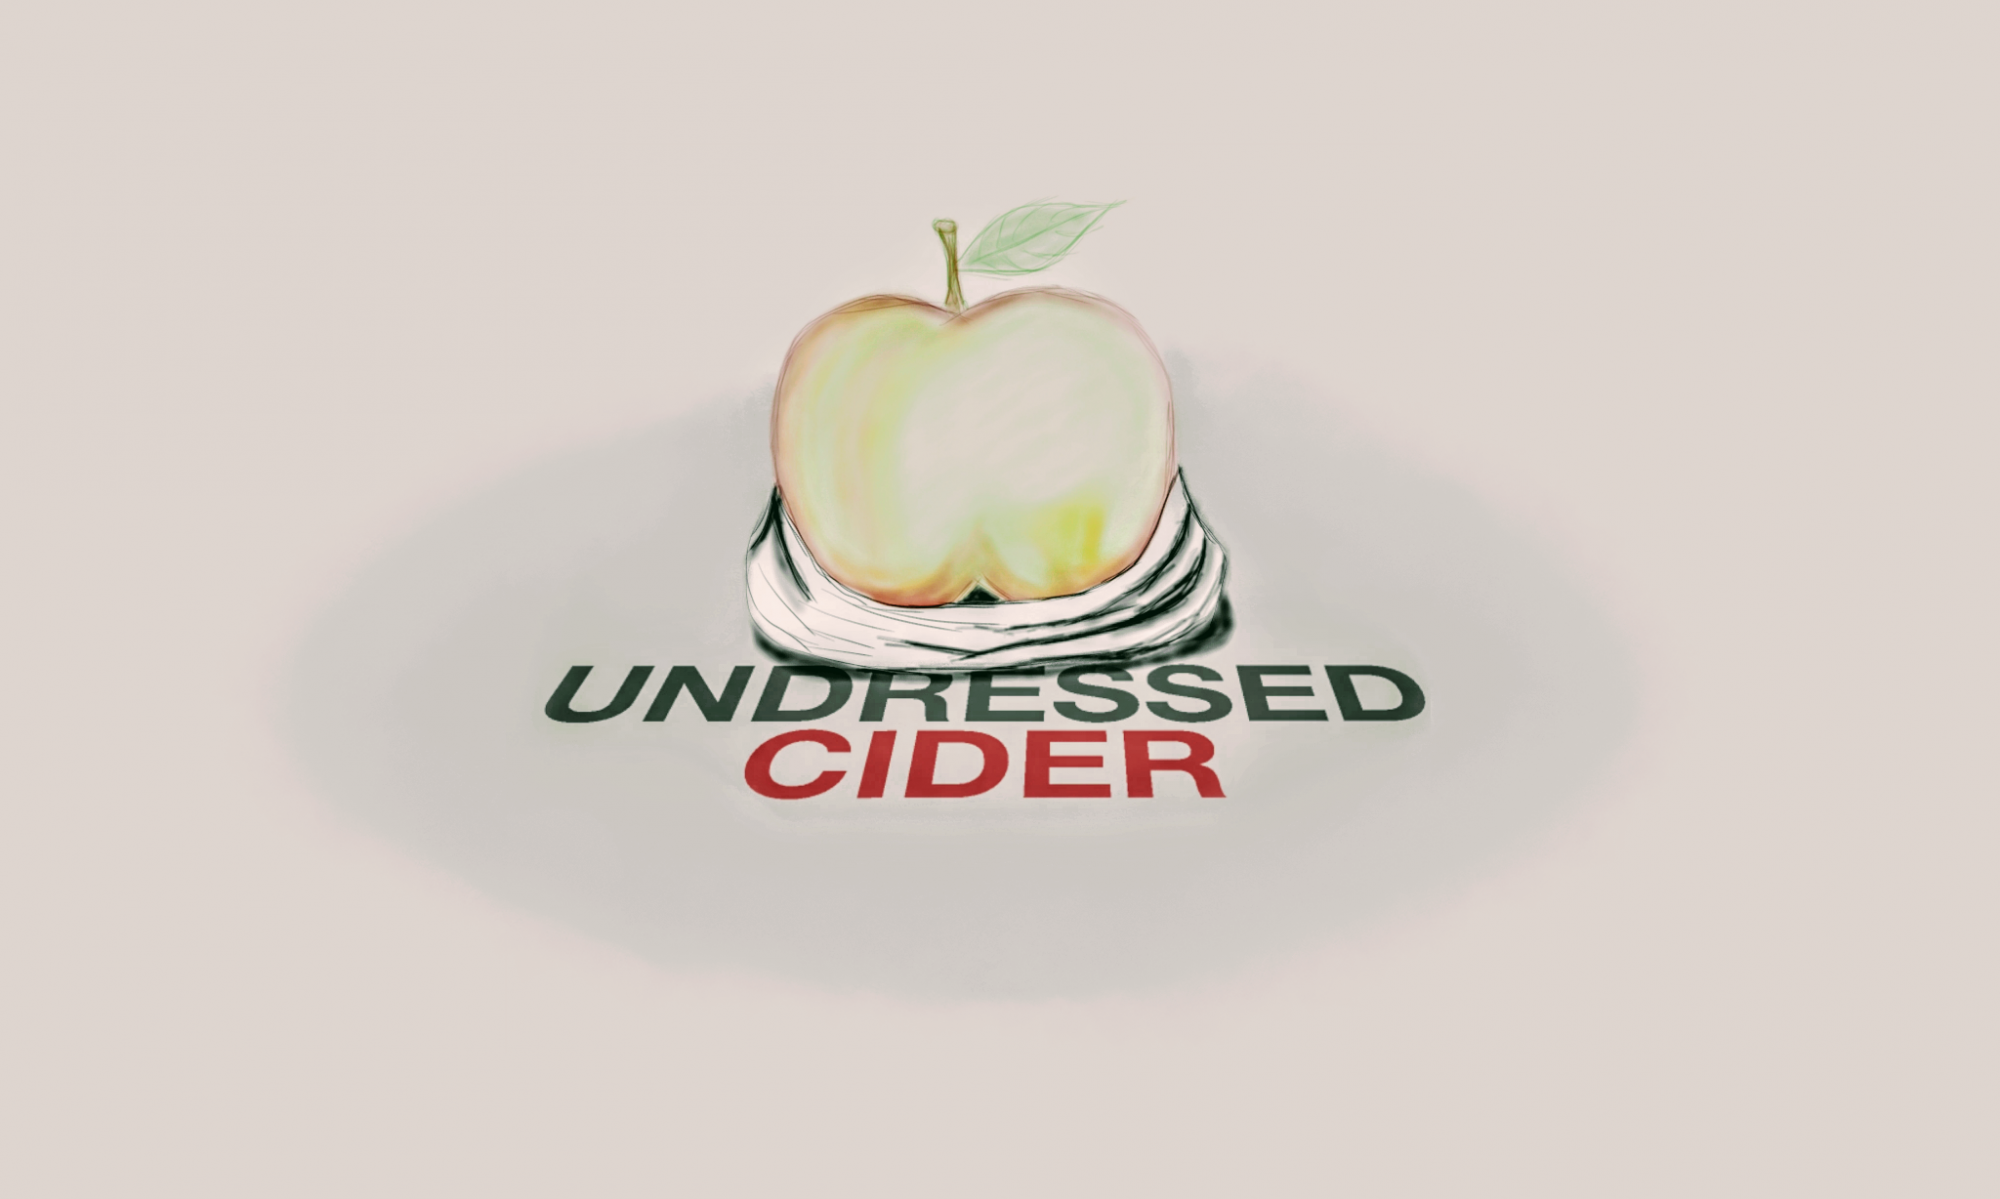 Undressed Cider - Coming Soon